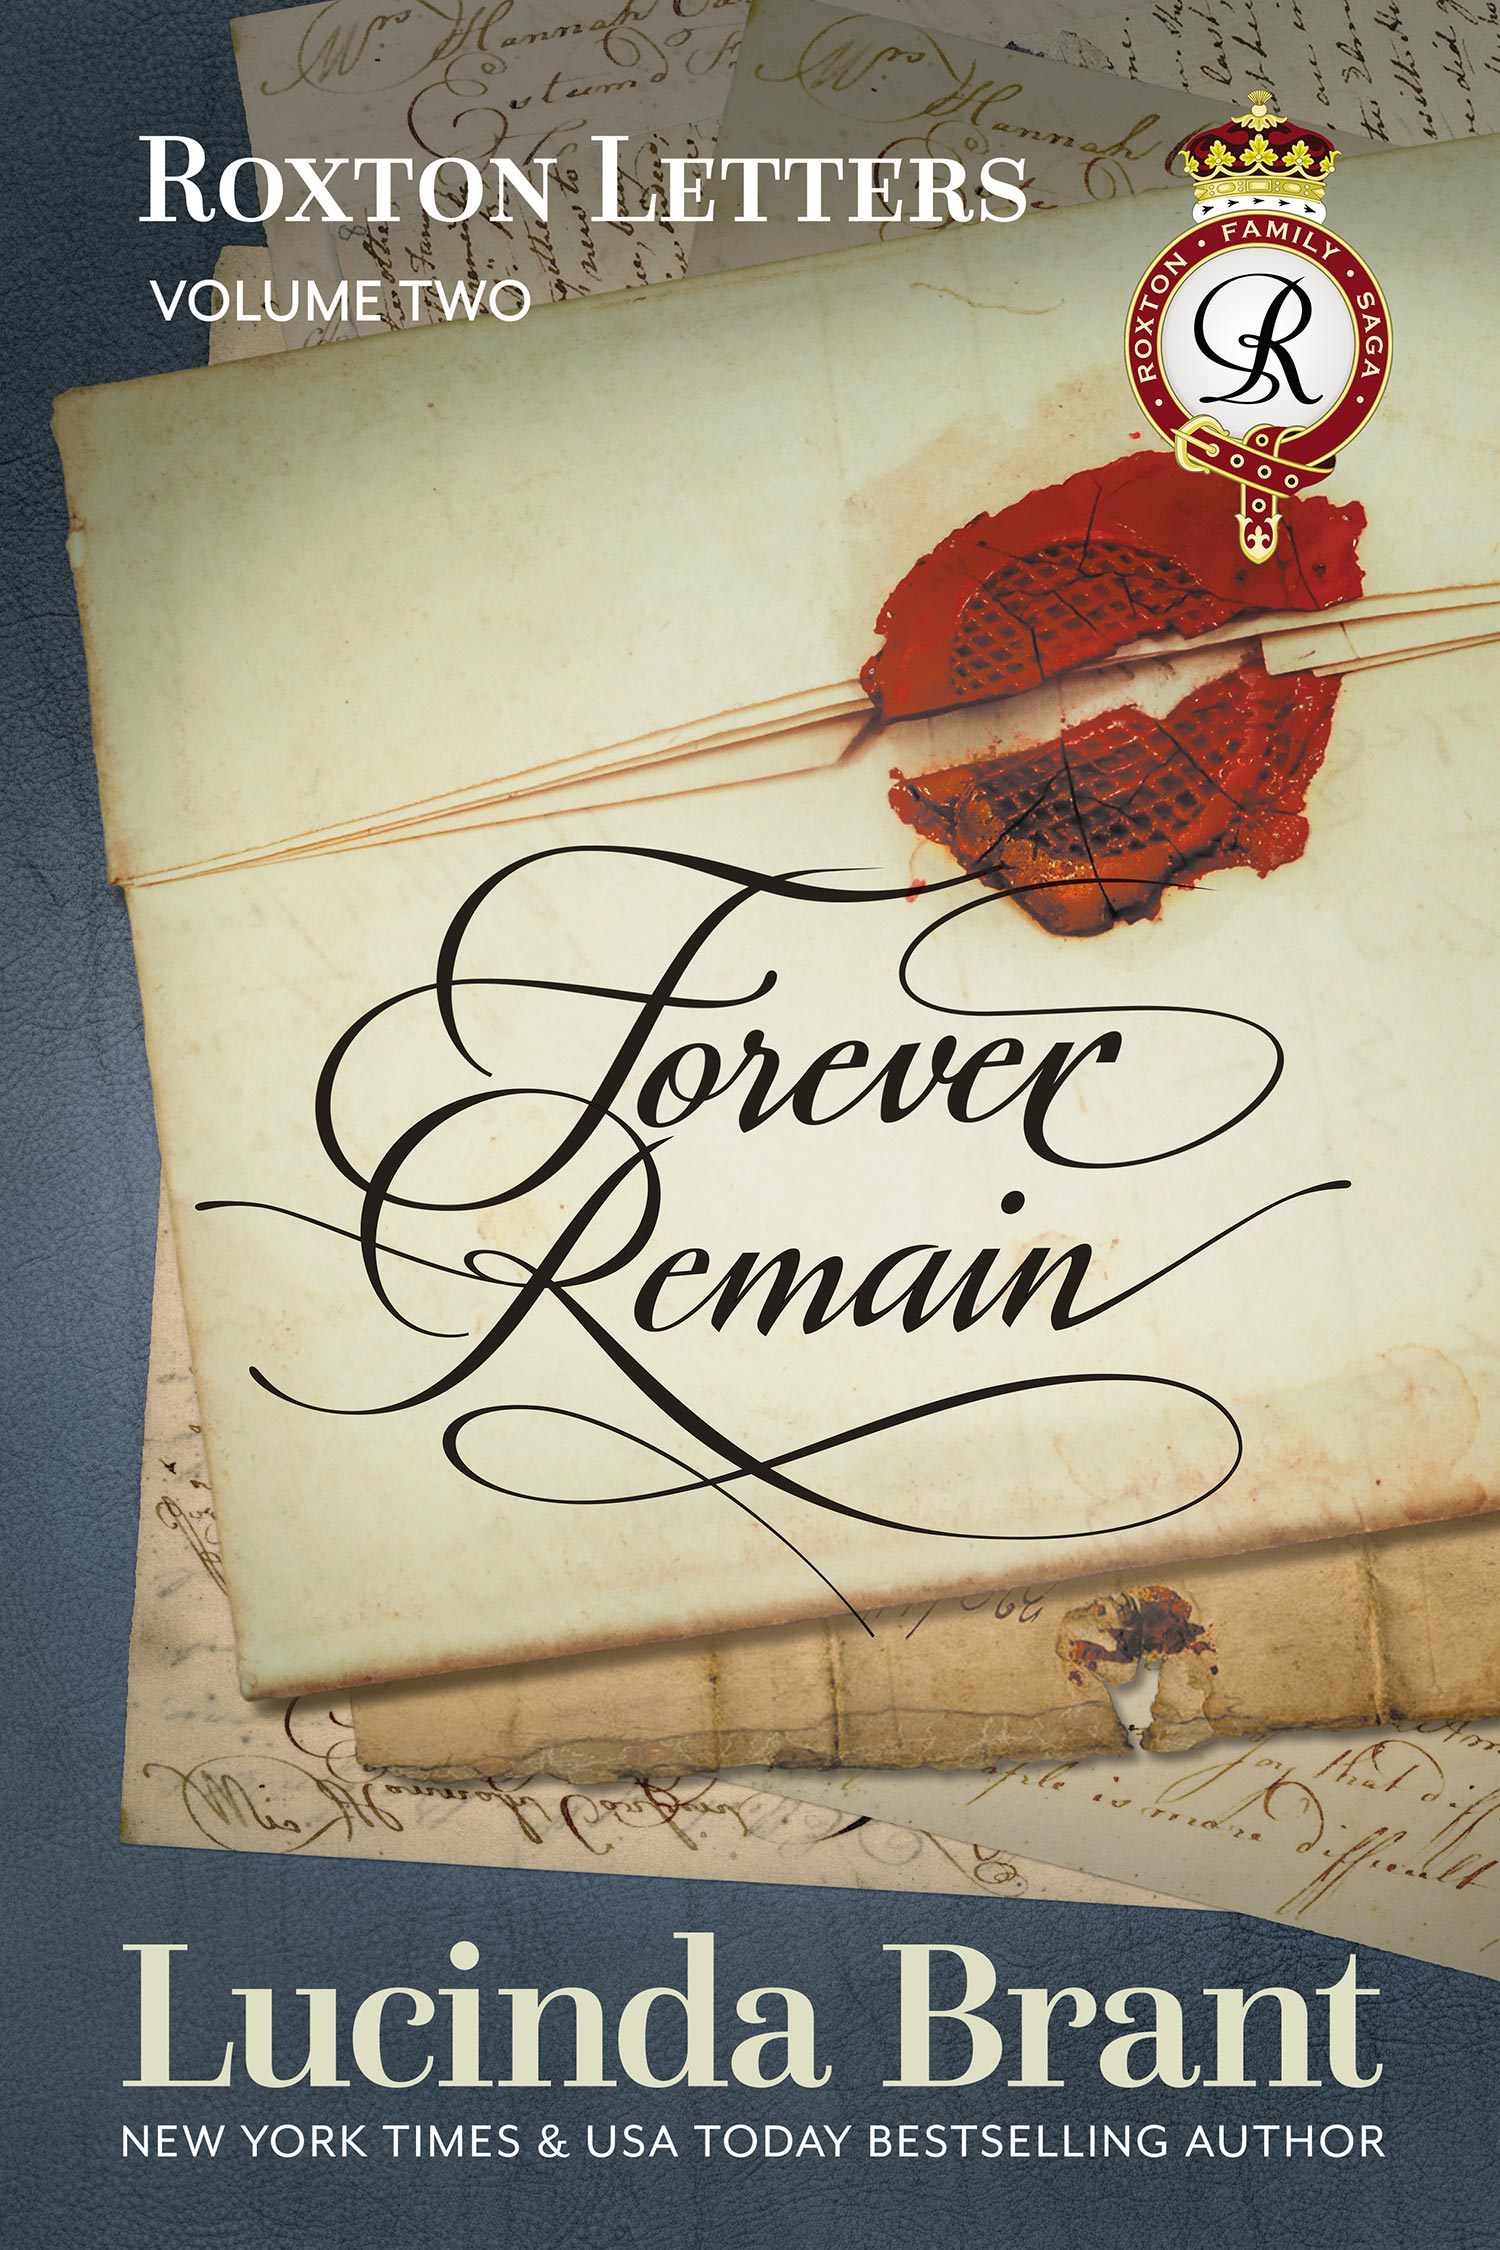 roxton-letters-vol-2-forever-remail-ebook.jpg